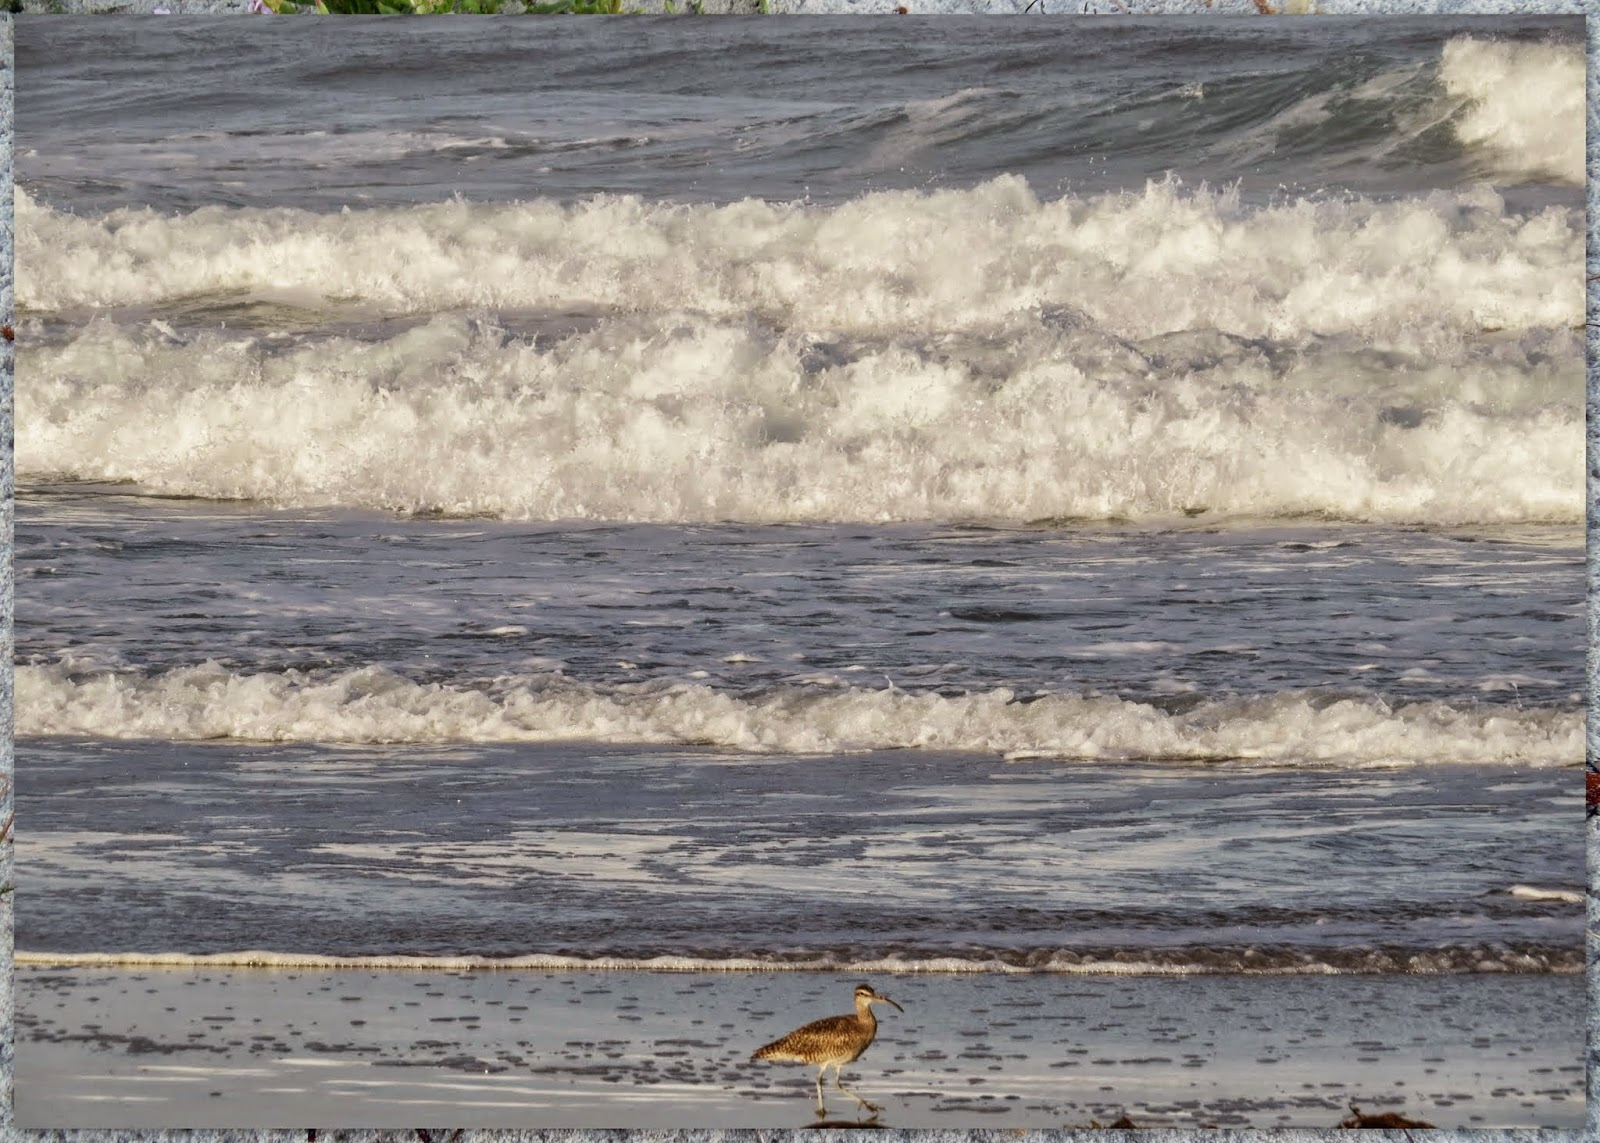 Birds and Crashing Surf